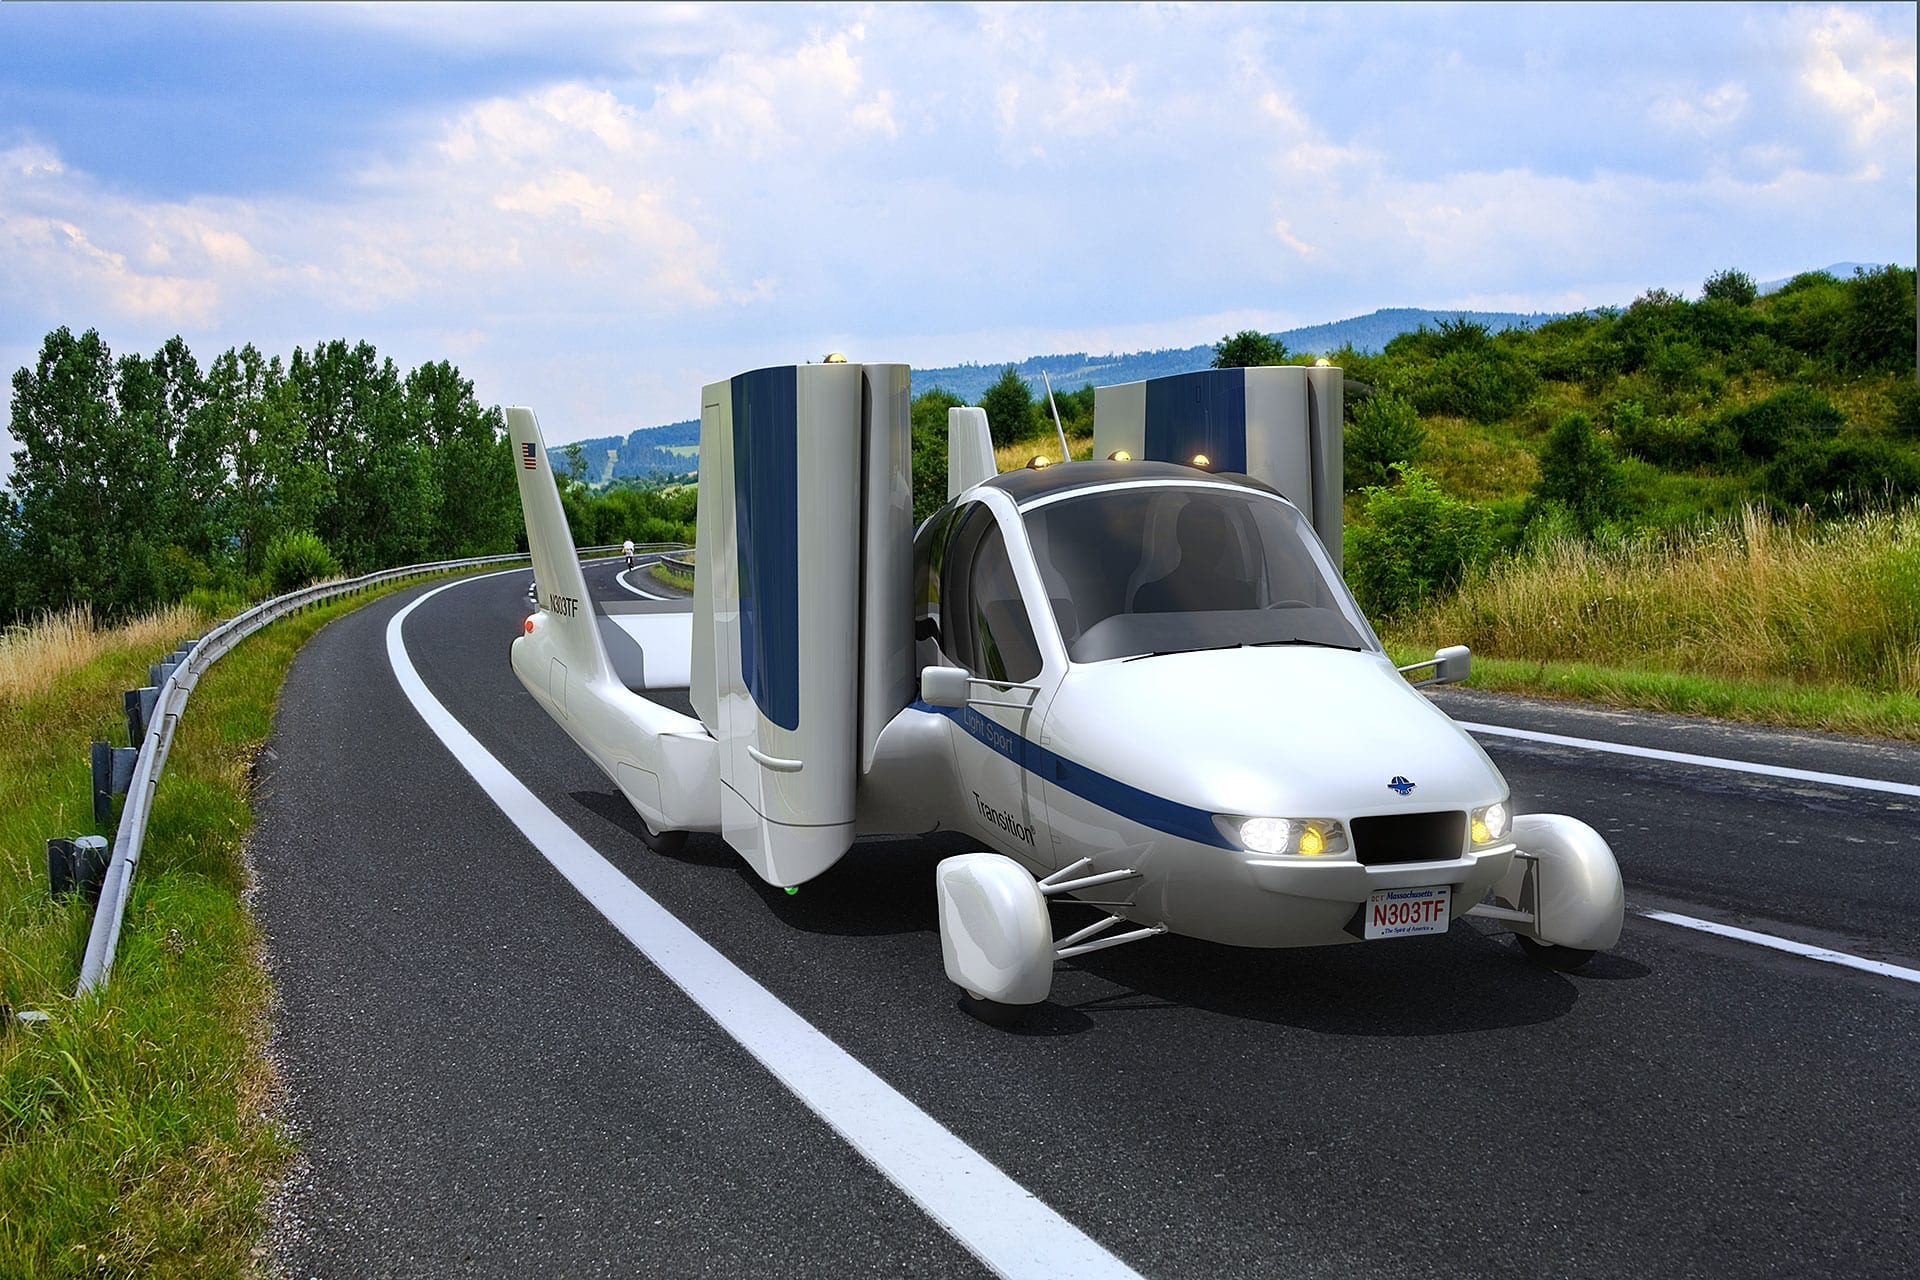 The Future: Concept vehicles or reality? - Terrafugia Transition Flying Car